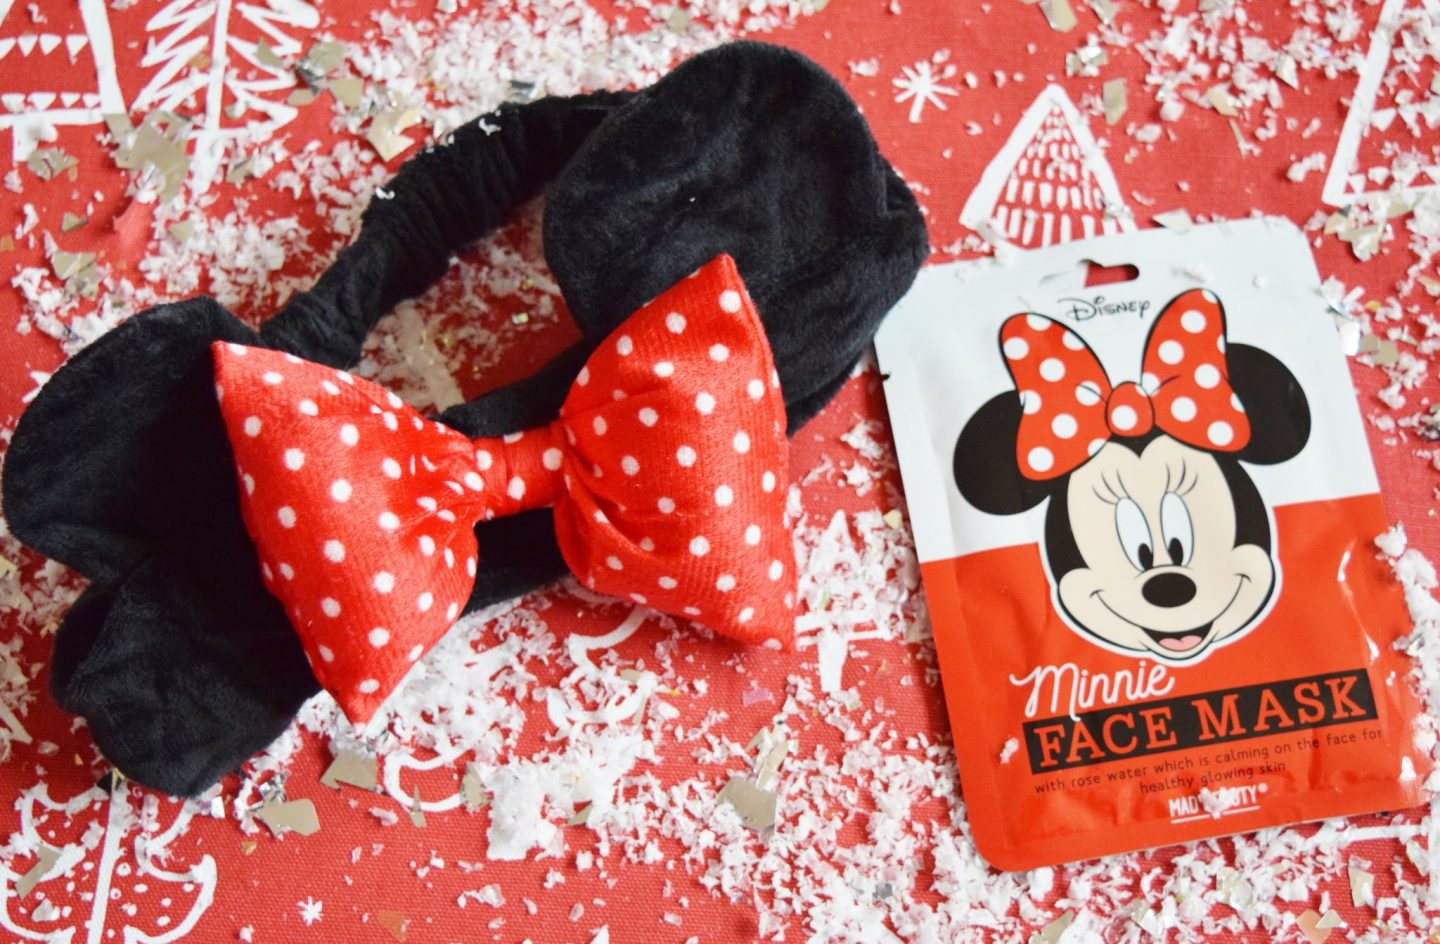 mad beauty disney minnie mouse face mask